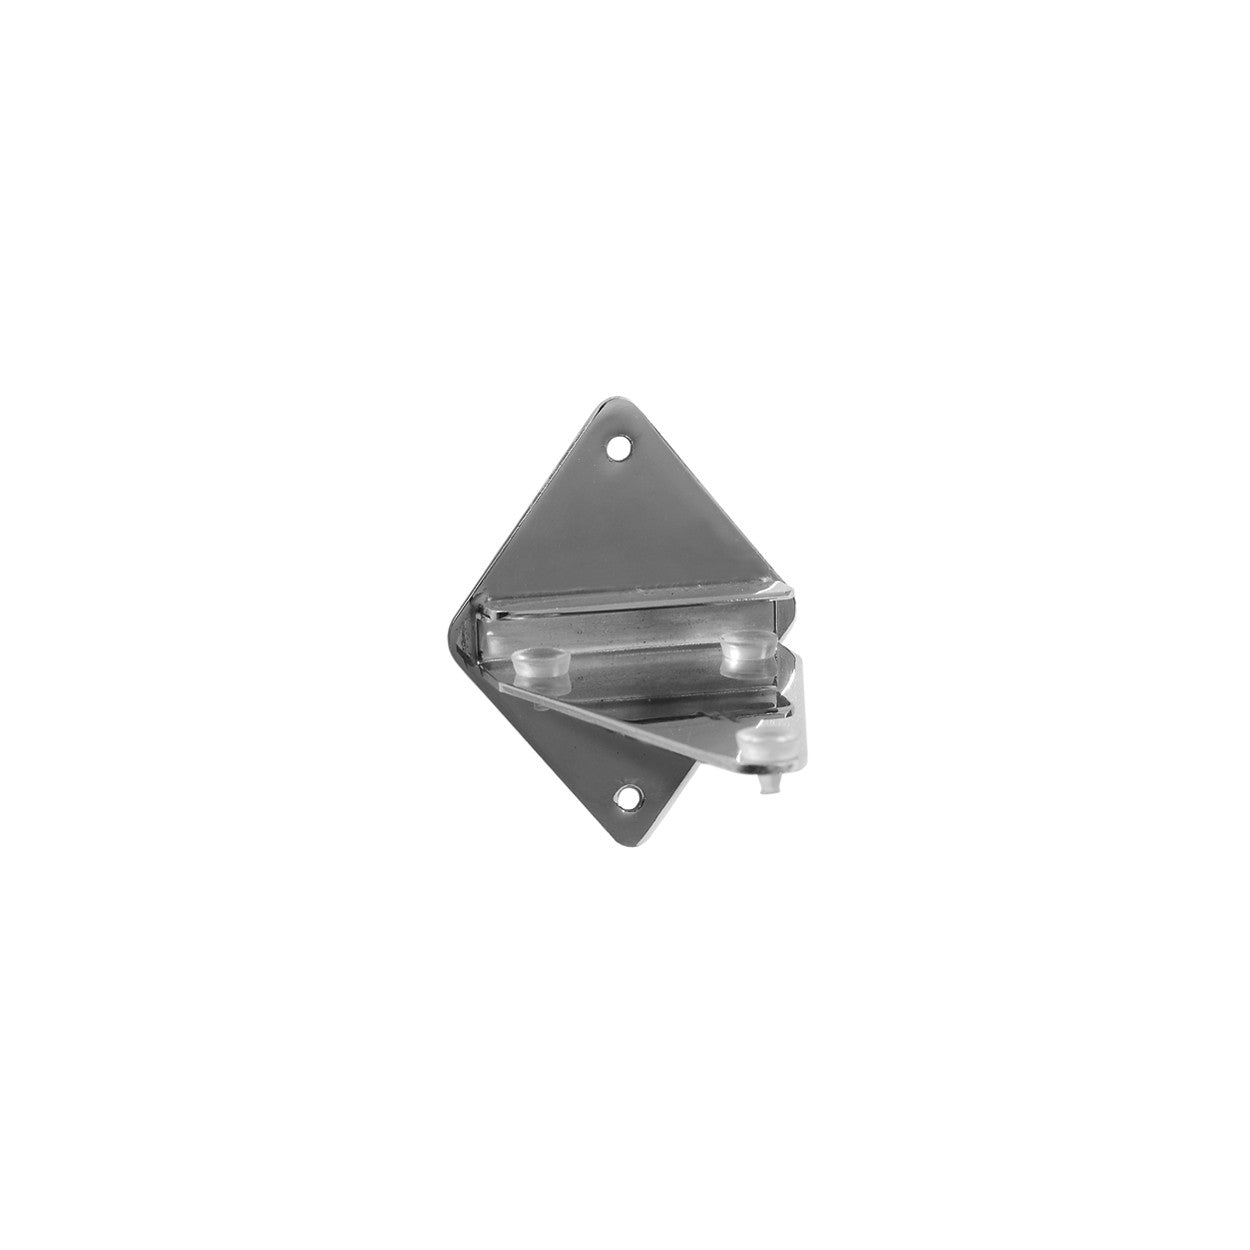 Wall mount cantilever bracket suitable for glass shelves  for 8 mm shelves 95 x 75 H Back S1653CH